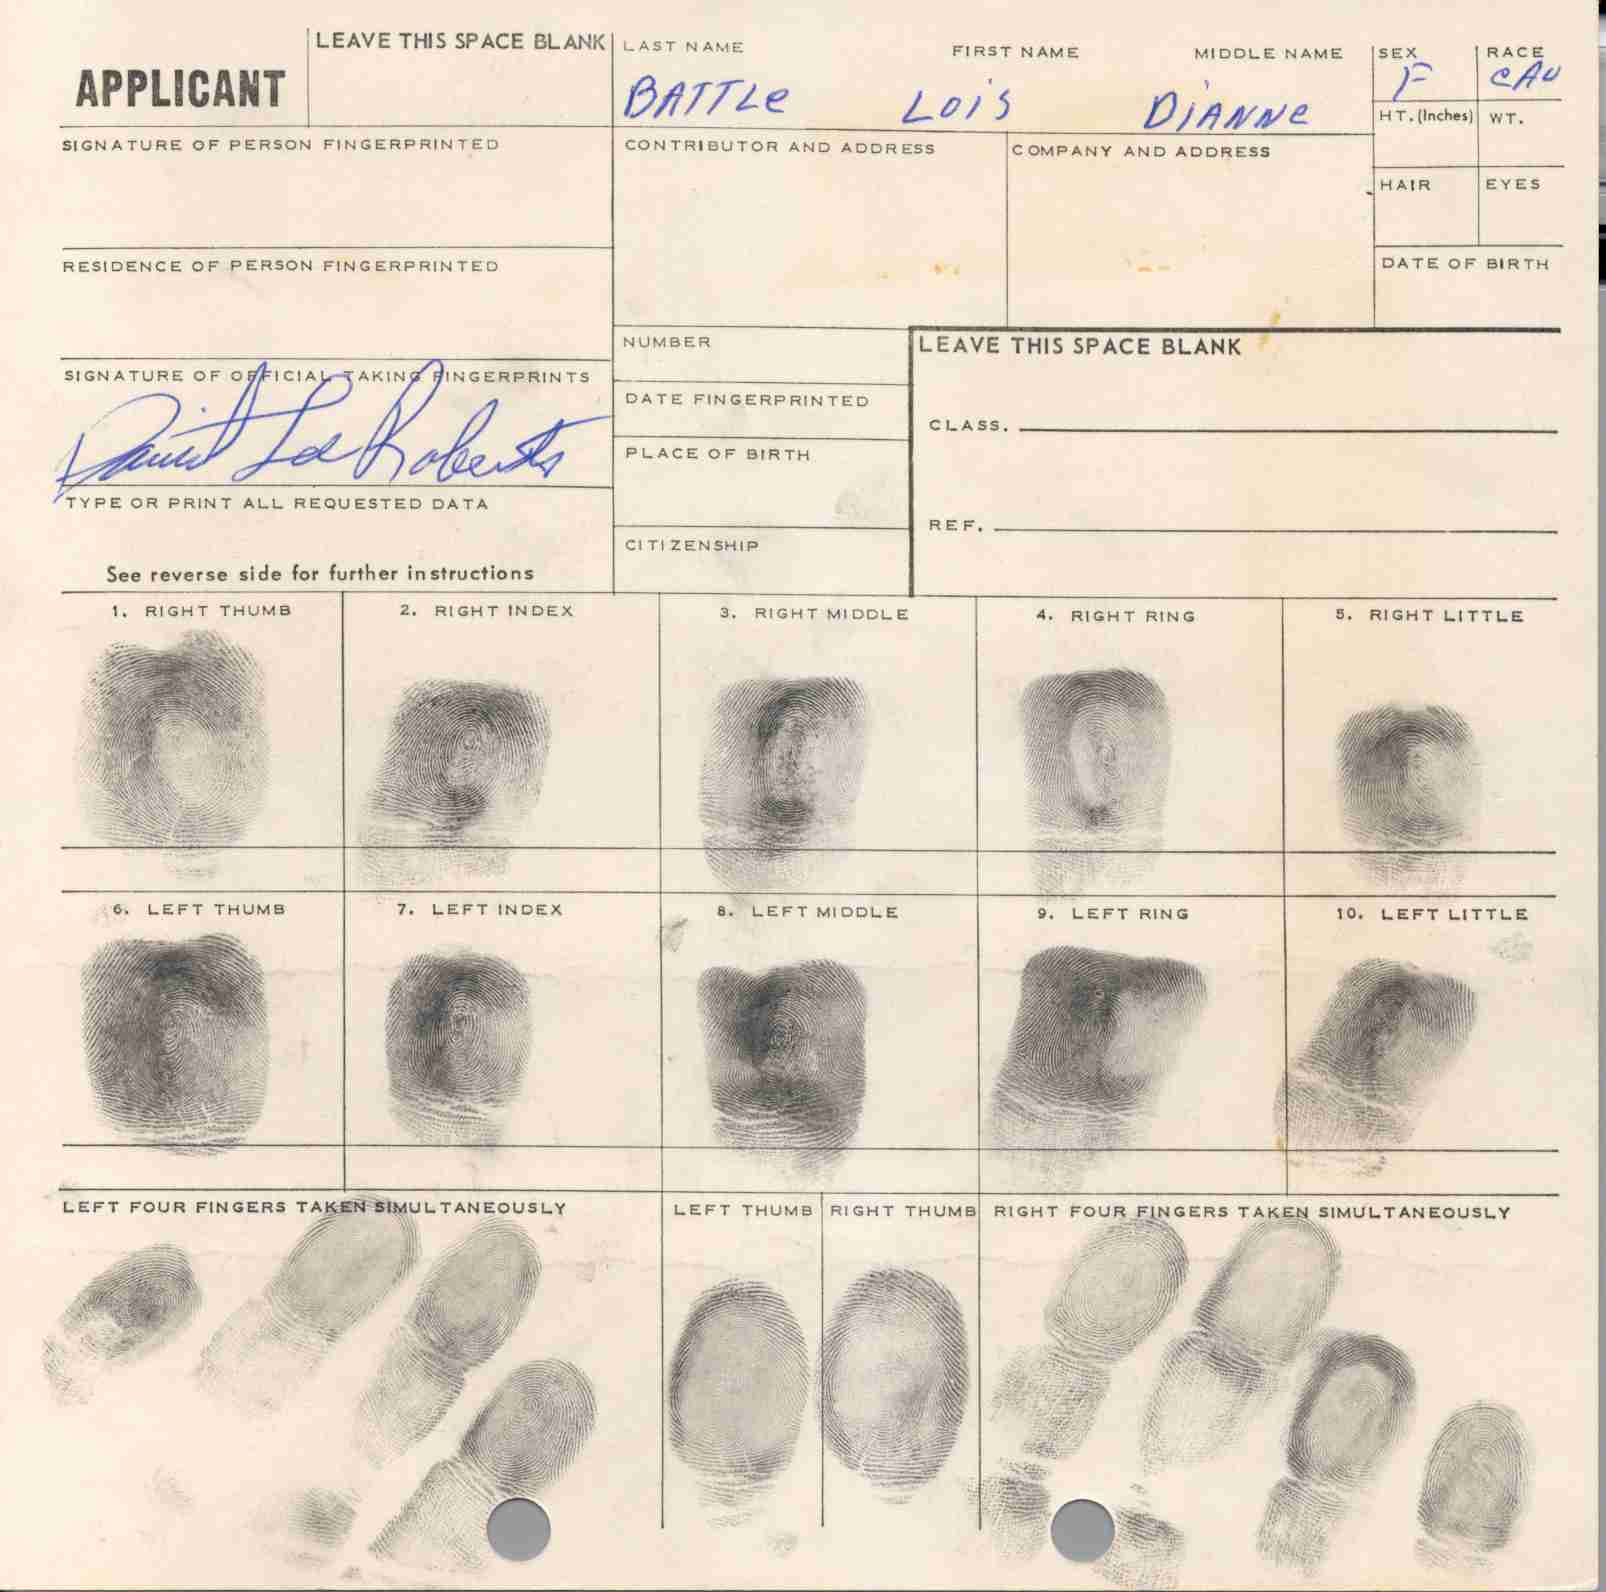 lois dianne battle fingerprint card.jpg